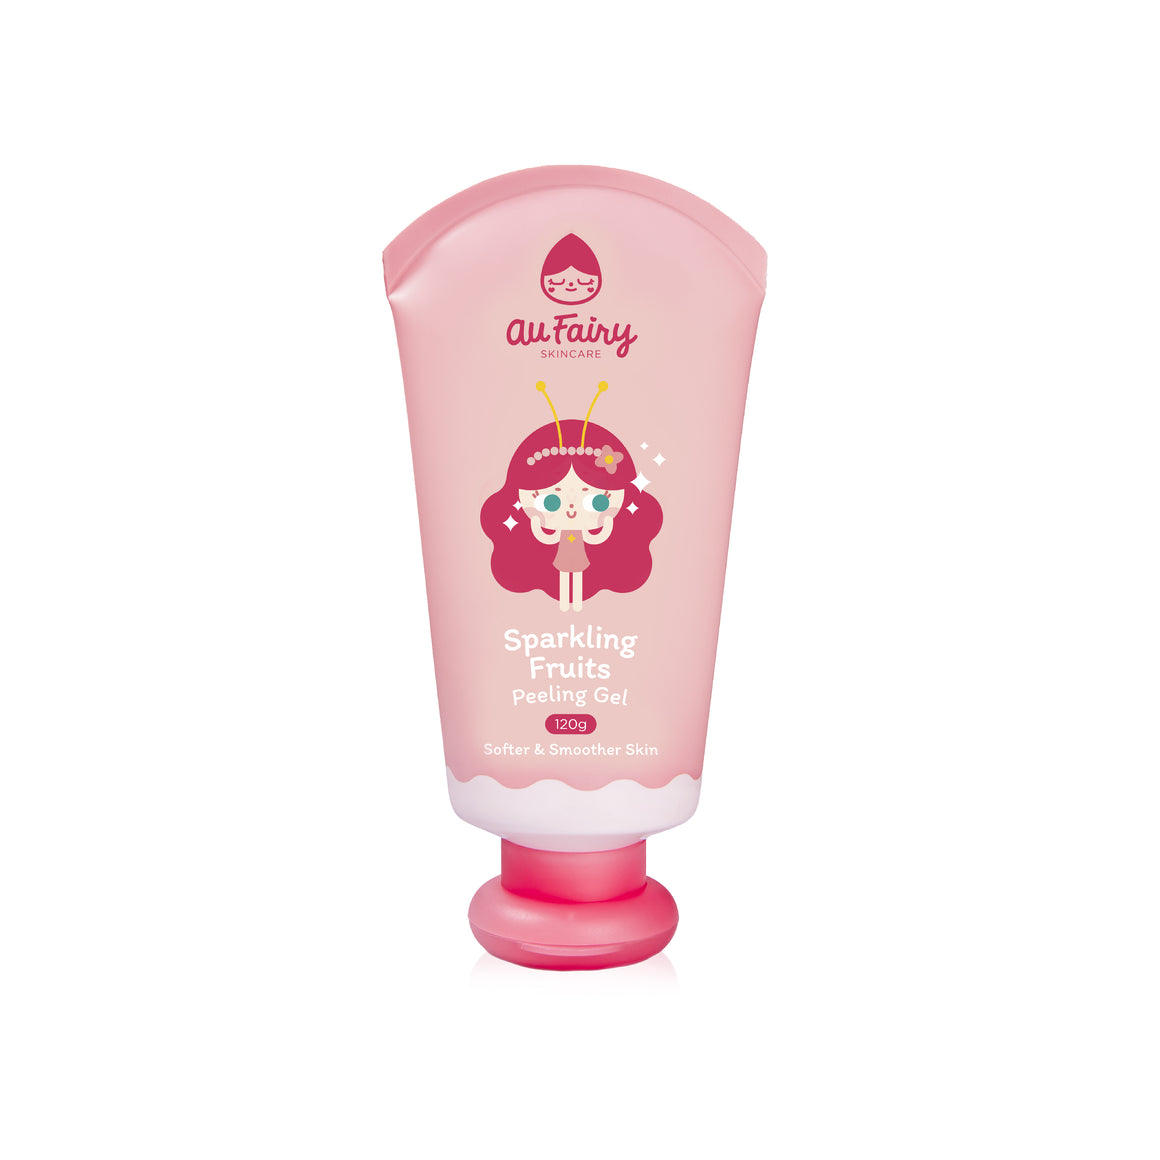 AUFAIRY Sparkling Fruits Peeling Gel 120g